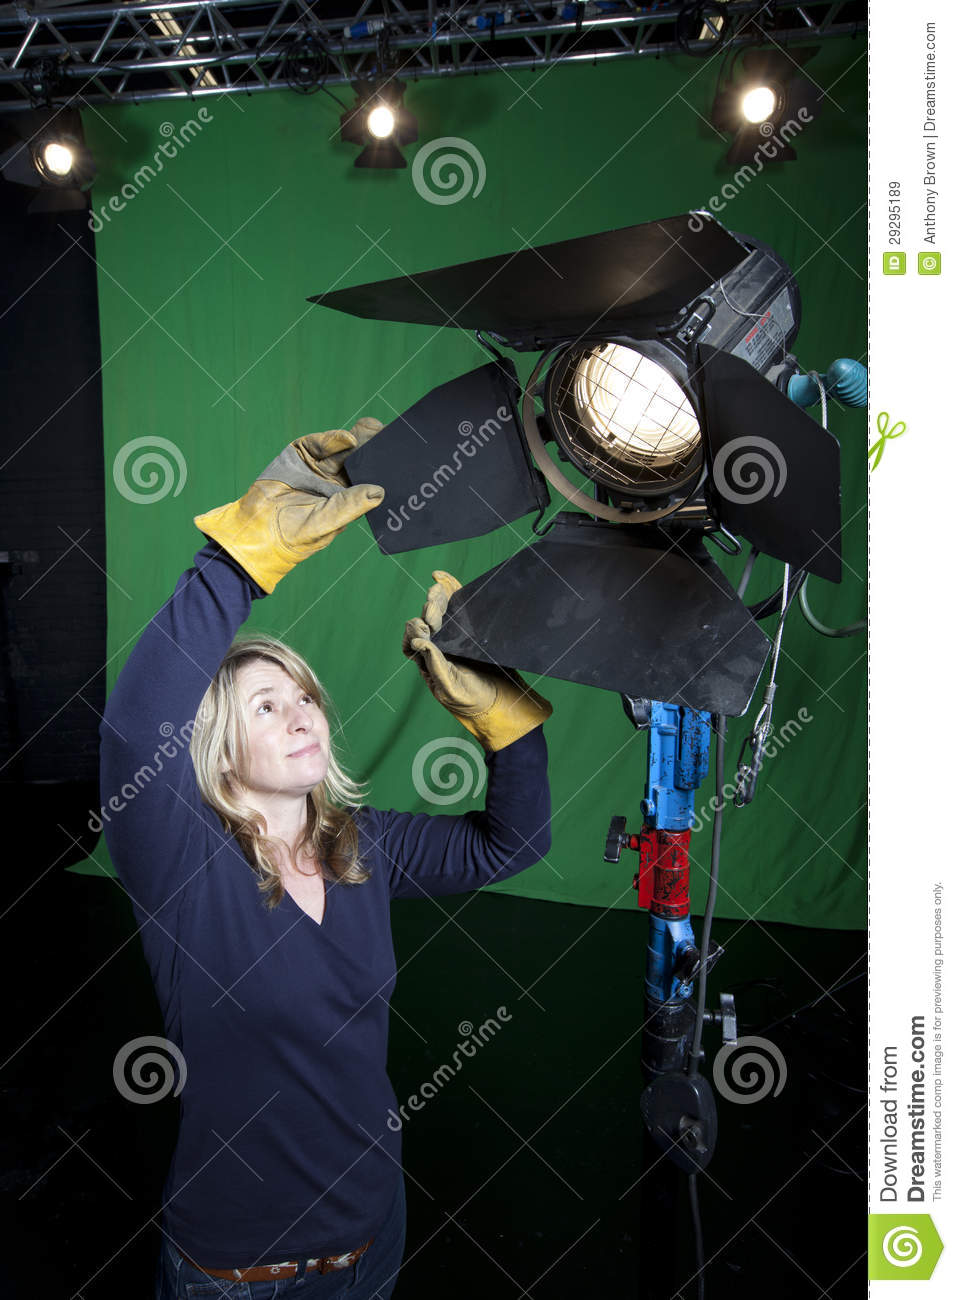 Lighting Technician In Television Studio Royalty Free